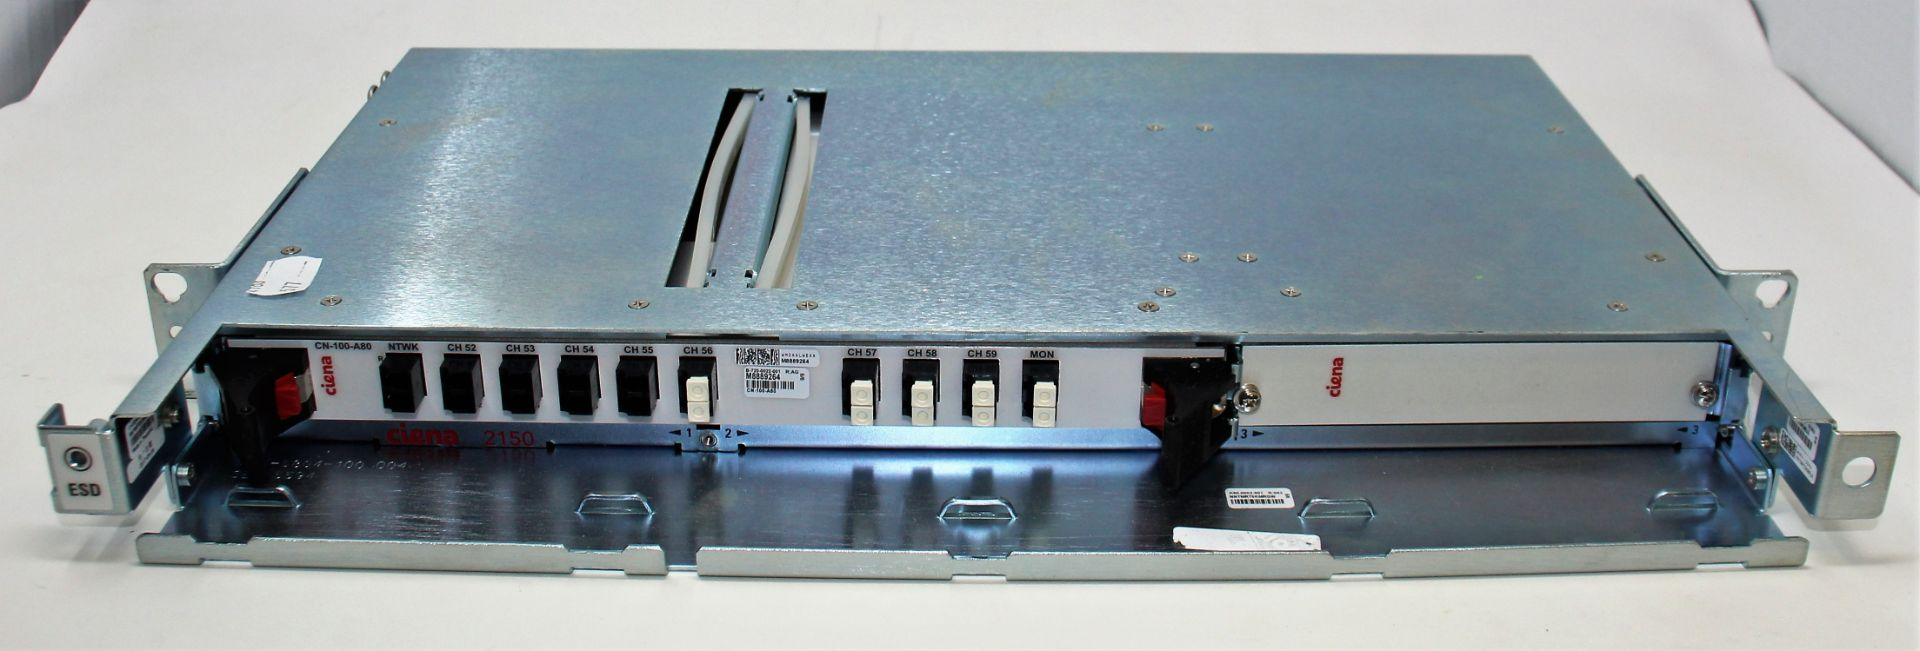 A pre-owned Ciena CN-100-A80 B-720-0022-001 WM0AALWEAA M8942765 DWDM Module (Untested, sold as - Image 2 of 3